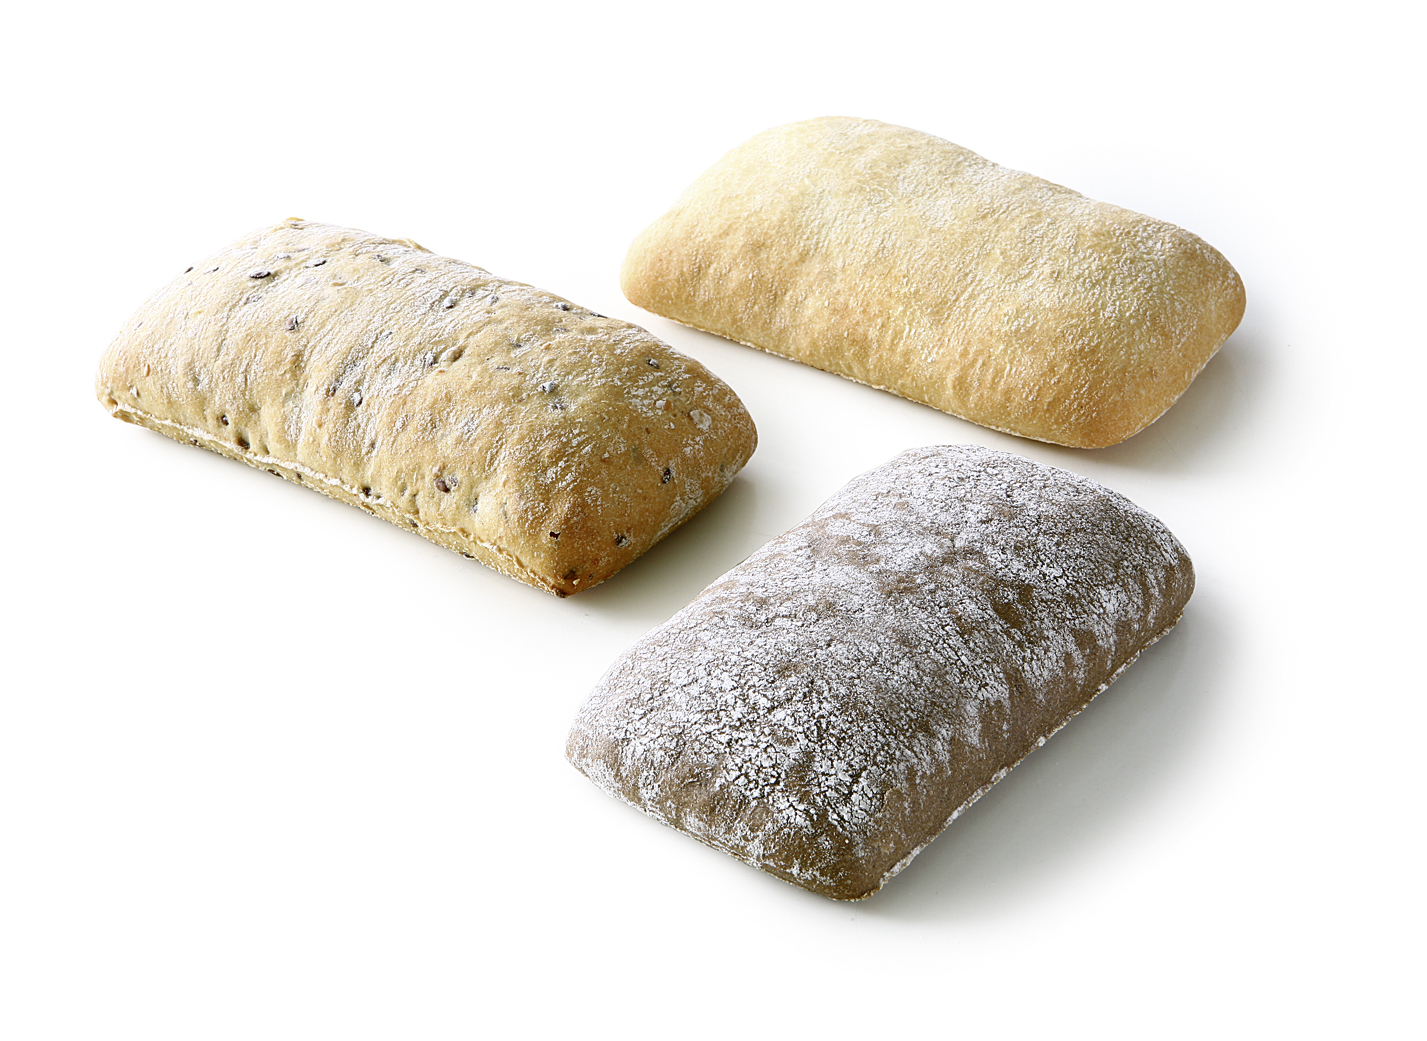 Ciabatta Mix - Mix of the varieties: wheat roll, rye roll and buttermilk roll